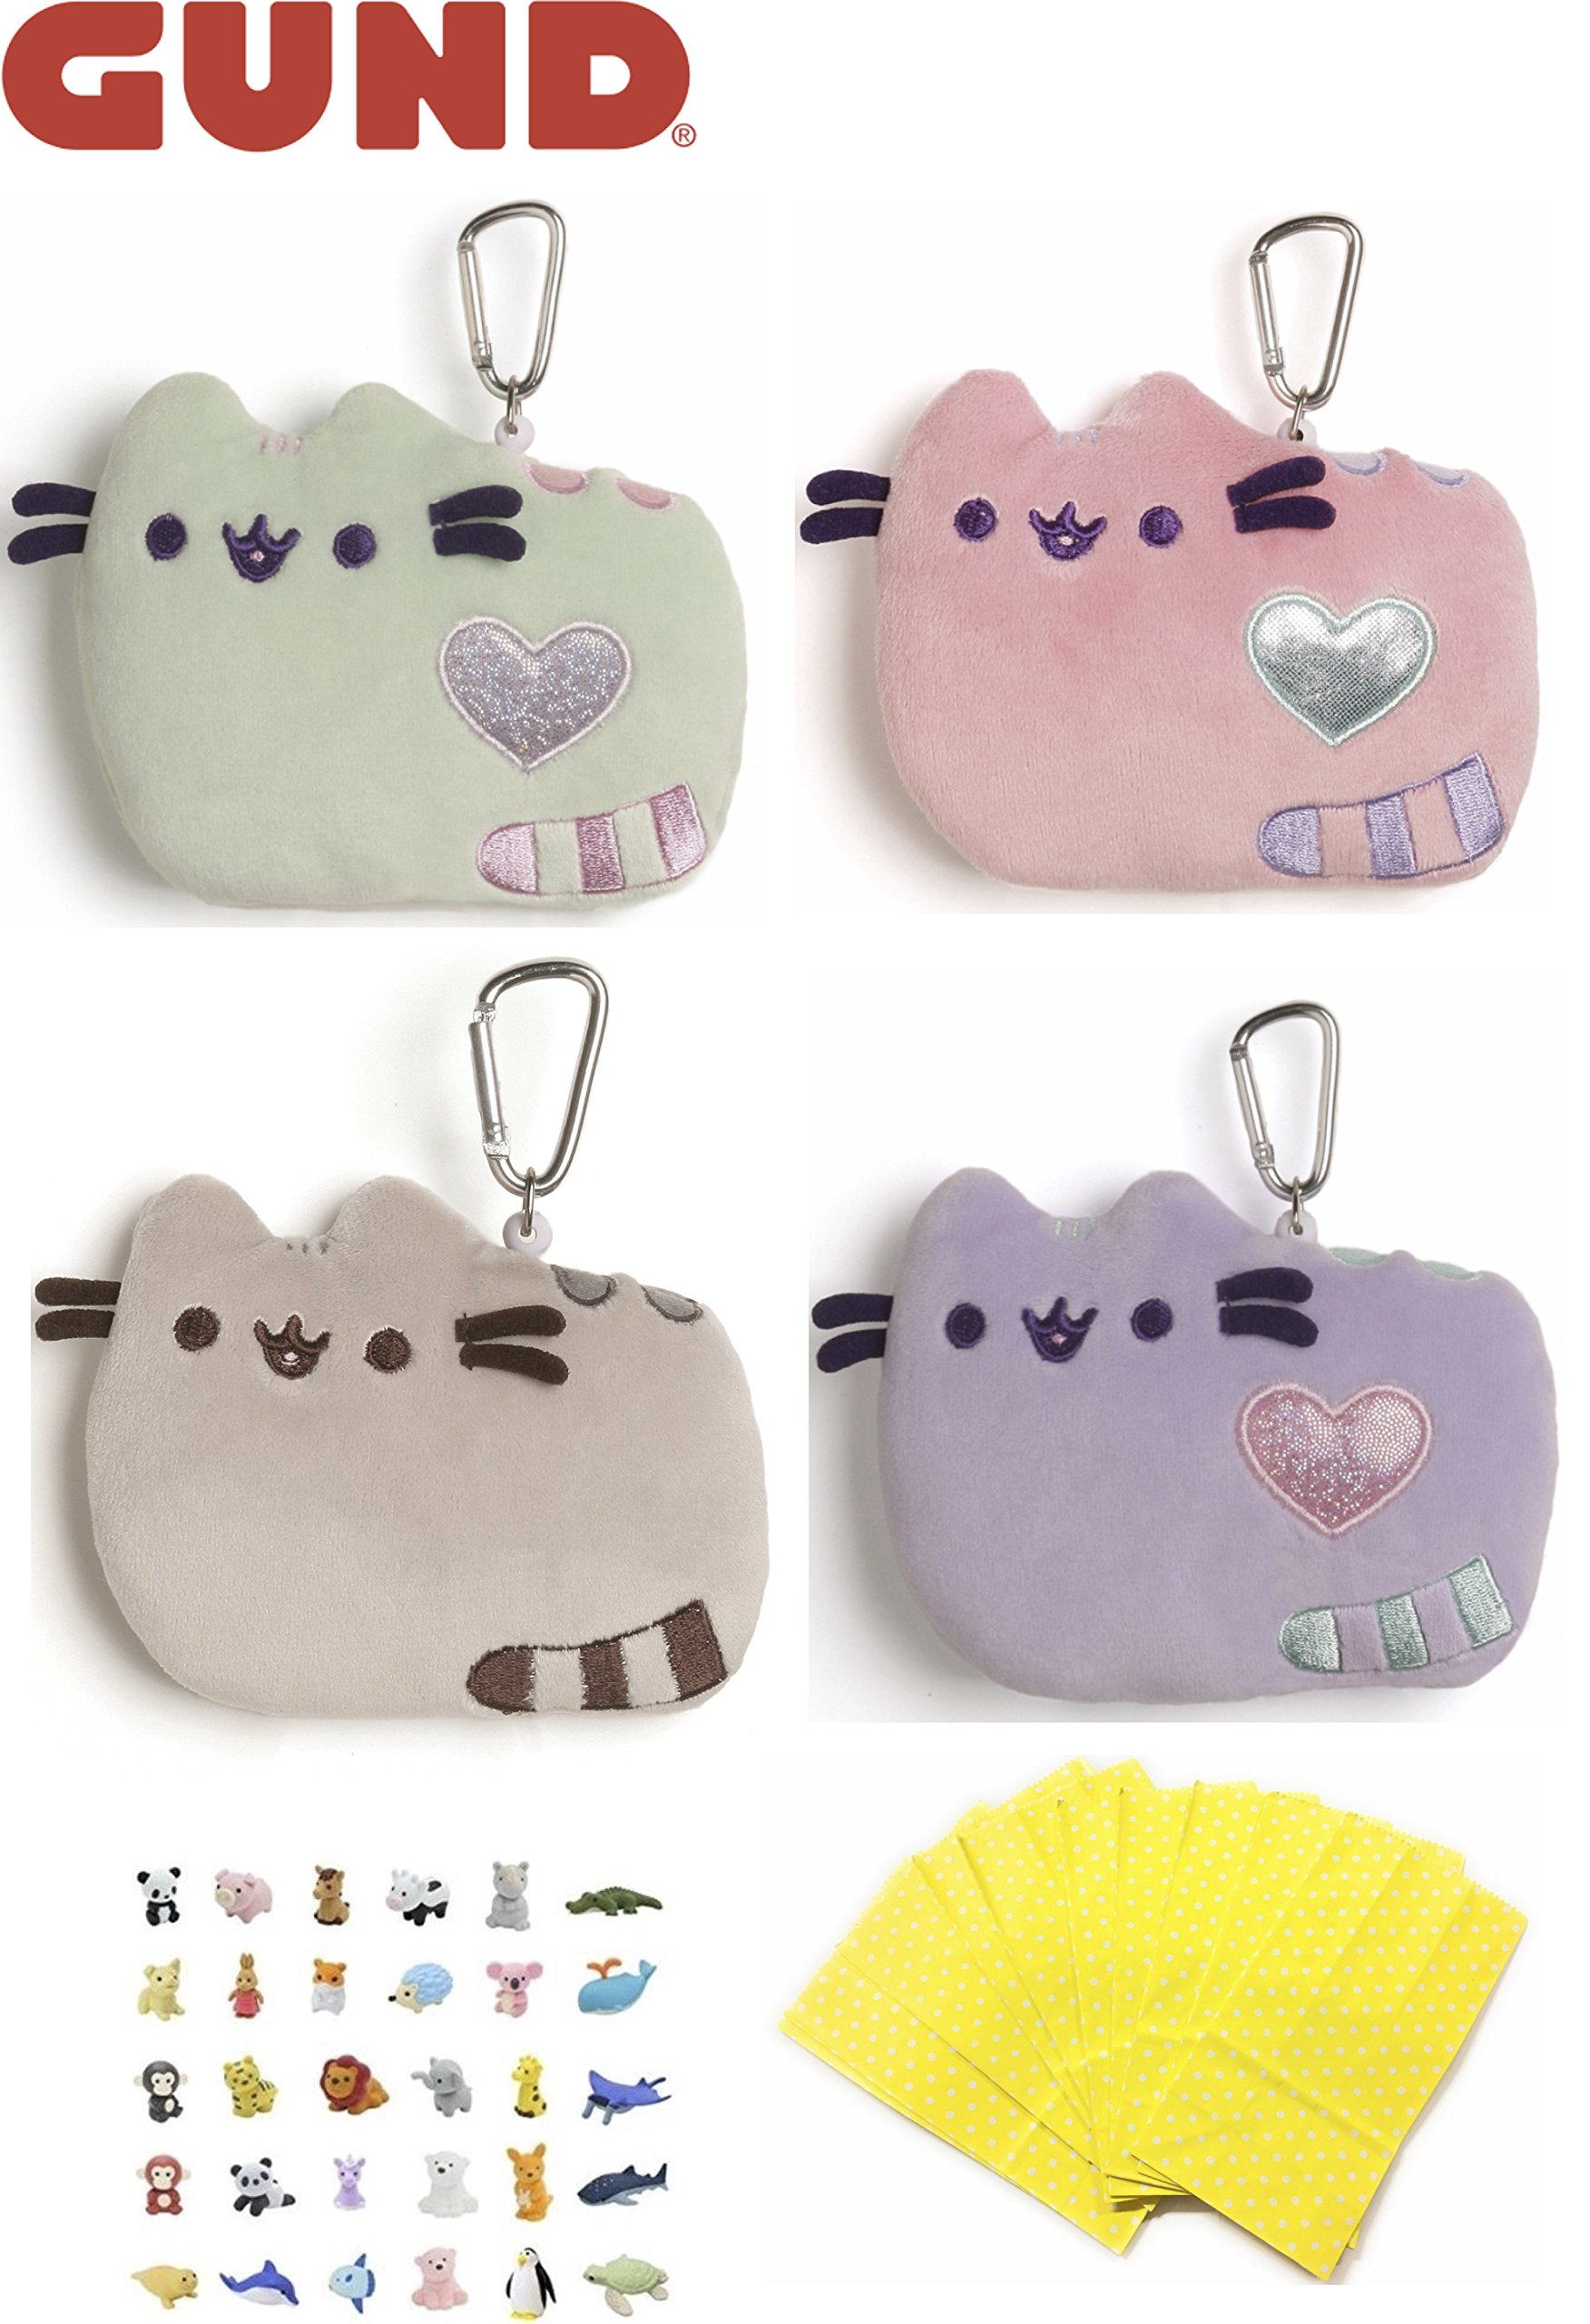 ReBL LLC GUND Pusheen Stuffed Plush Animals Toys Bundle Set of Clips Keychains Party Favors with Animal Puzzle Erasers and Gift Goodie Bags (Pusheen ID Cases) by ReBL LLC